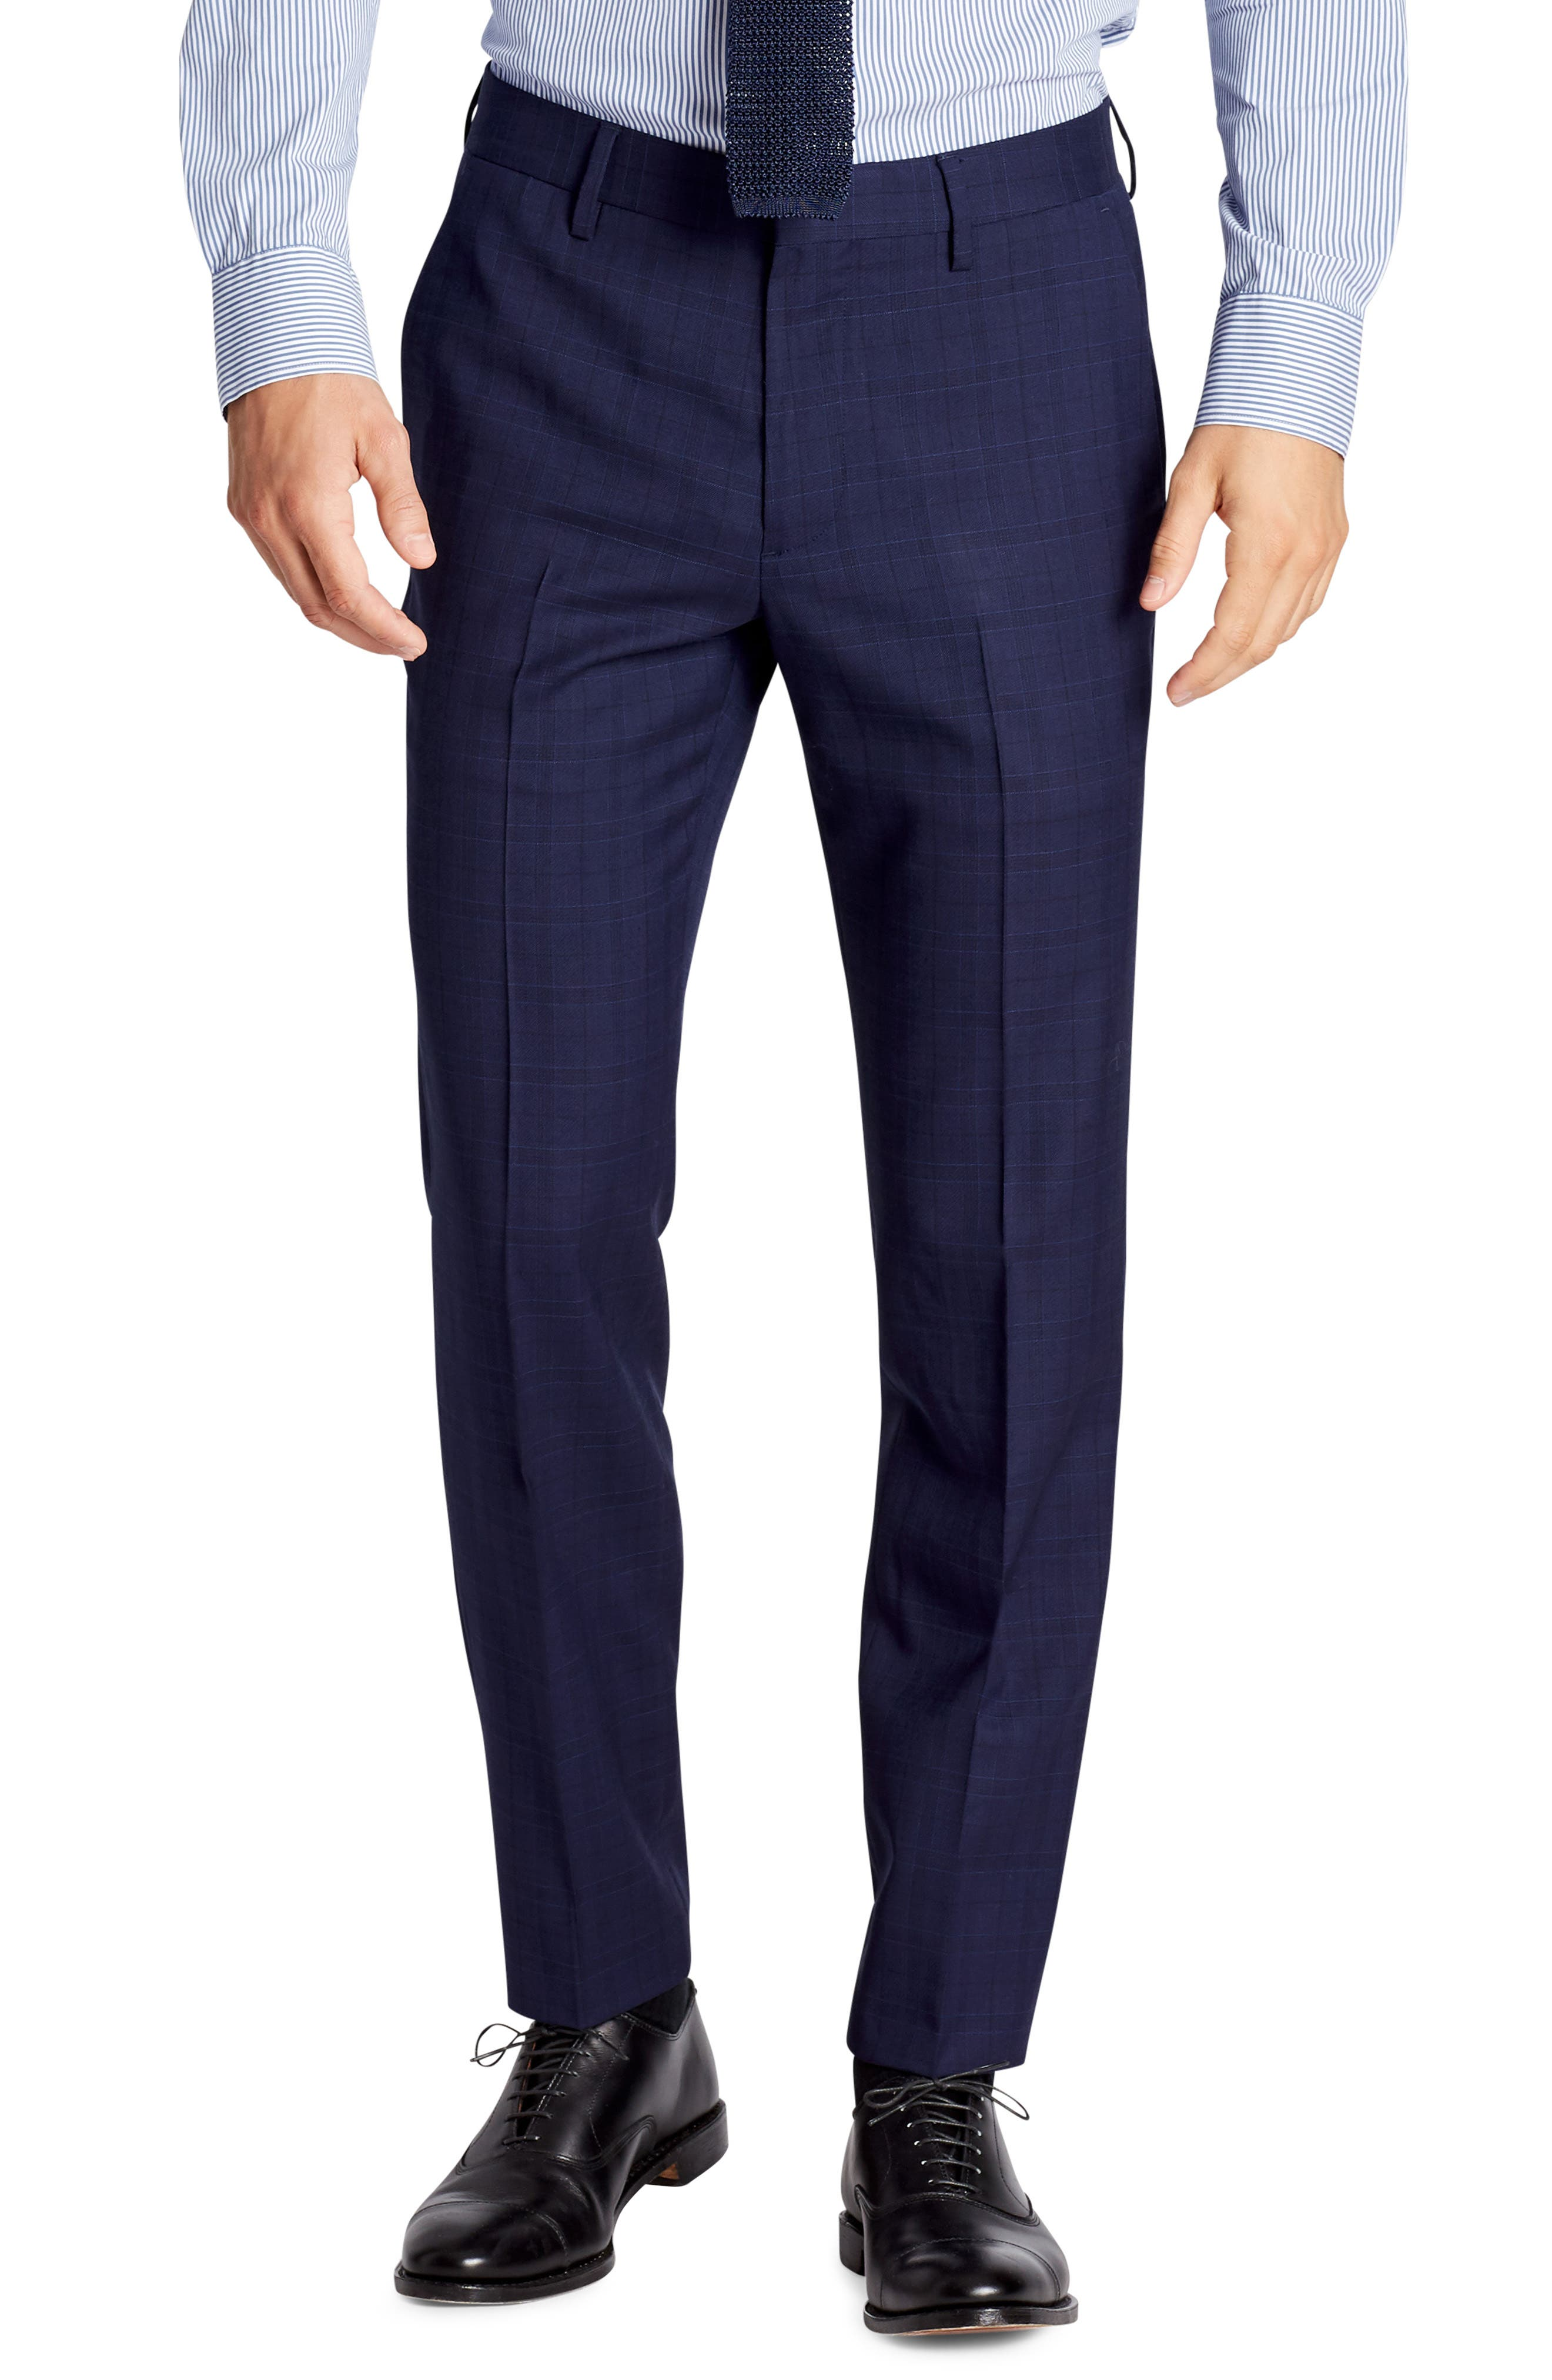 Jetsetter Flat Front Plaid Stretch Wool Trousers,                             Main thumbnail 1, color,                             400